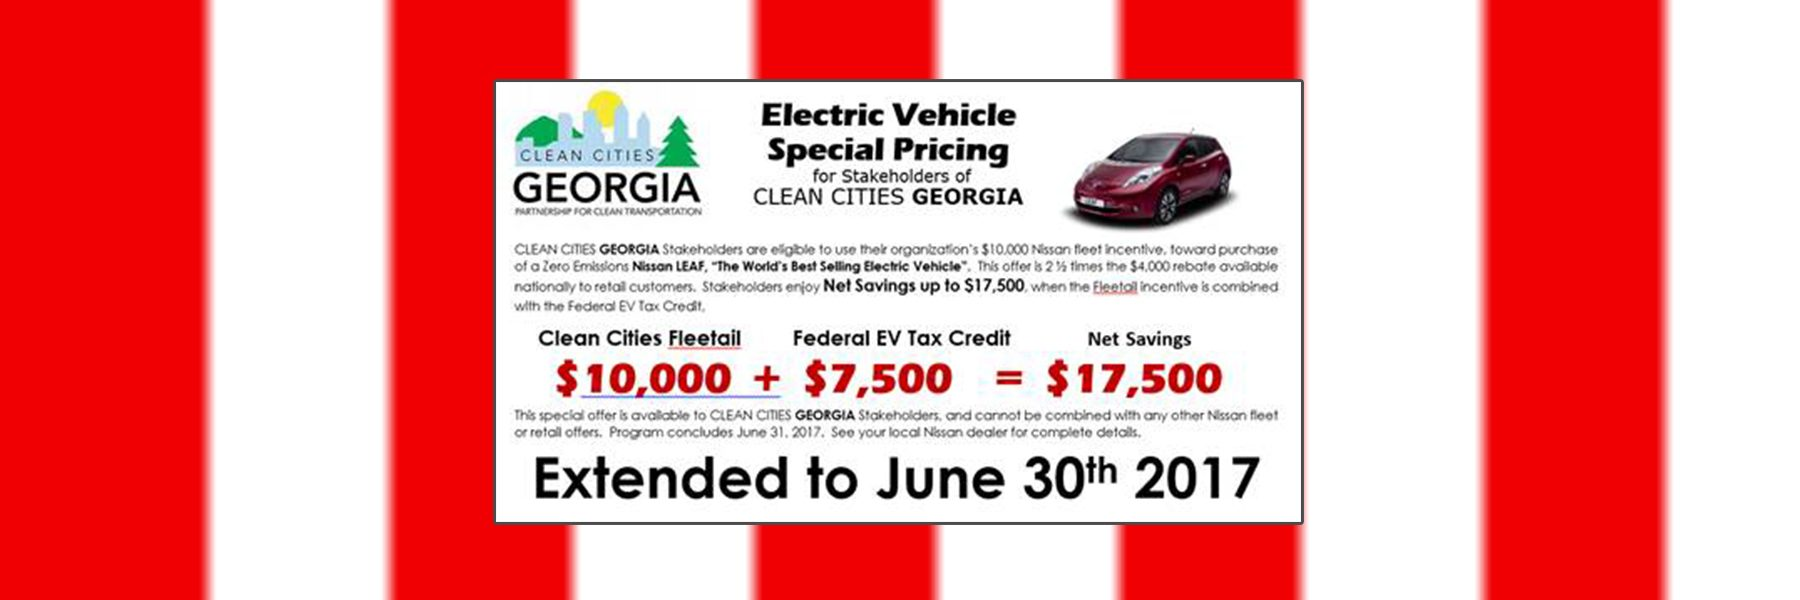 Electric Vehicle Special Pricing